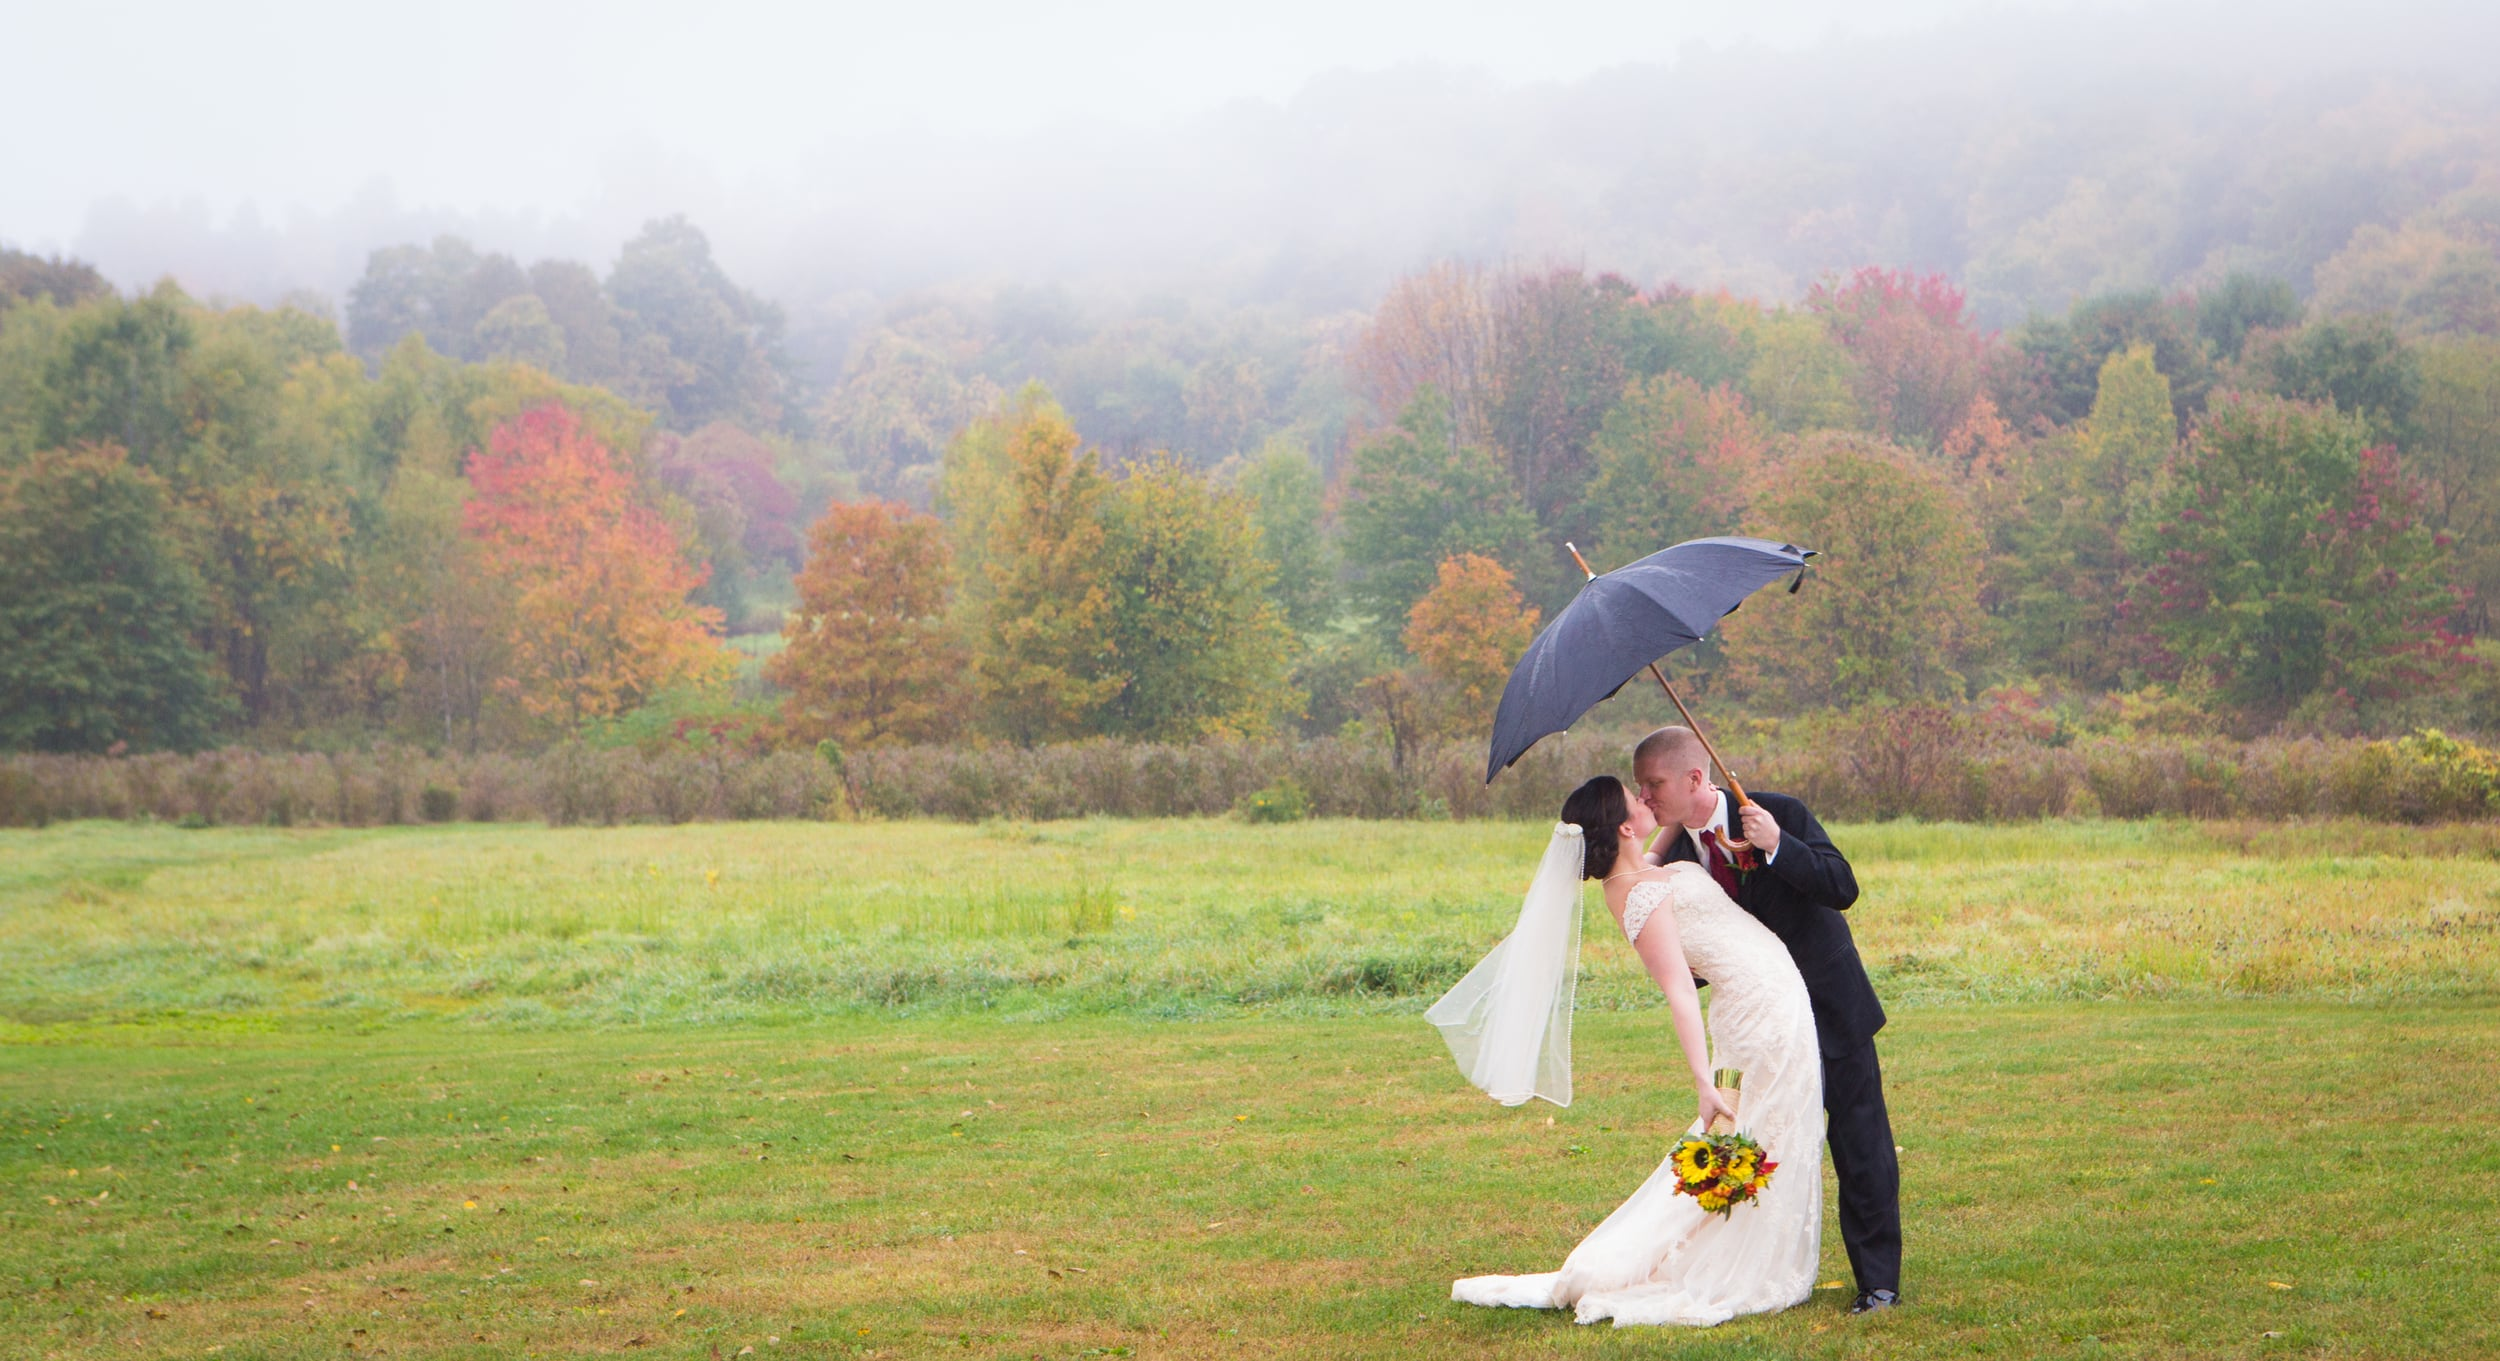 rainy day wedding photography